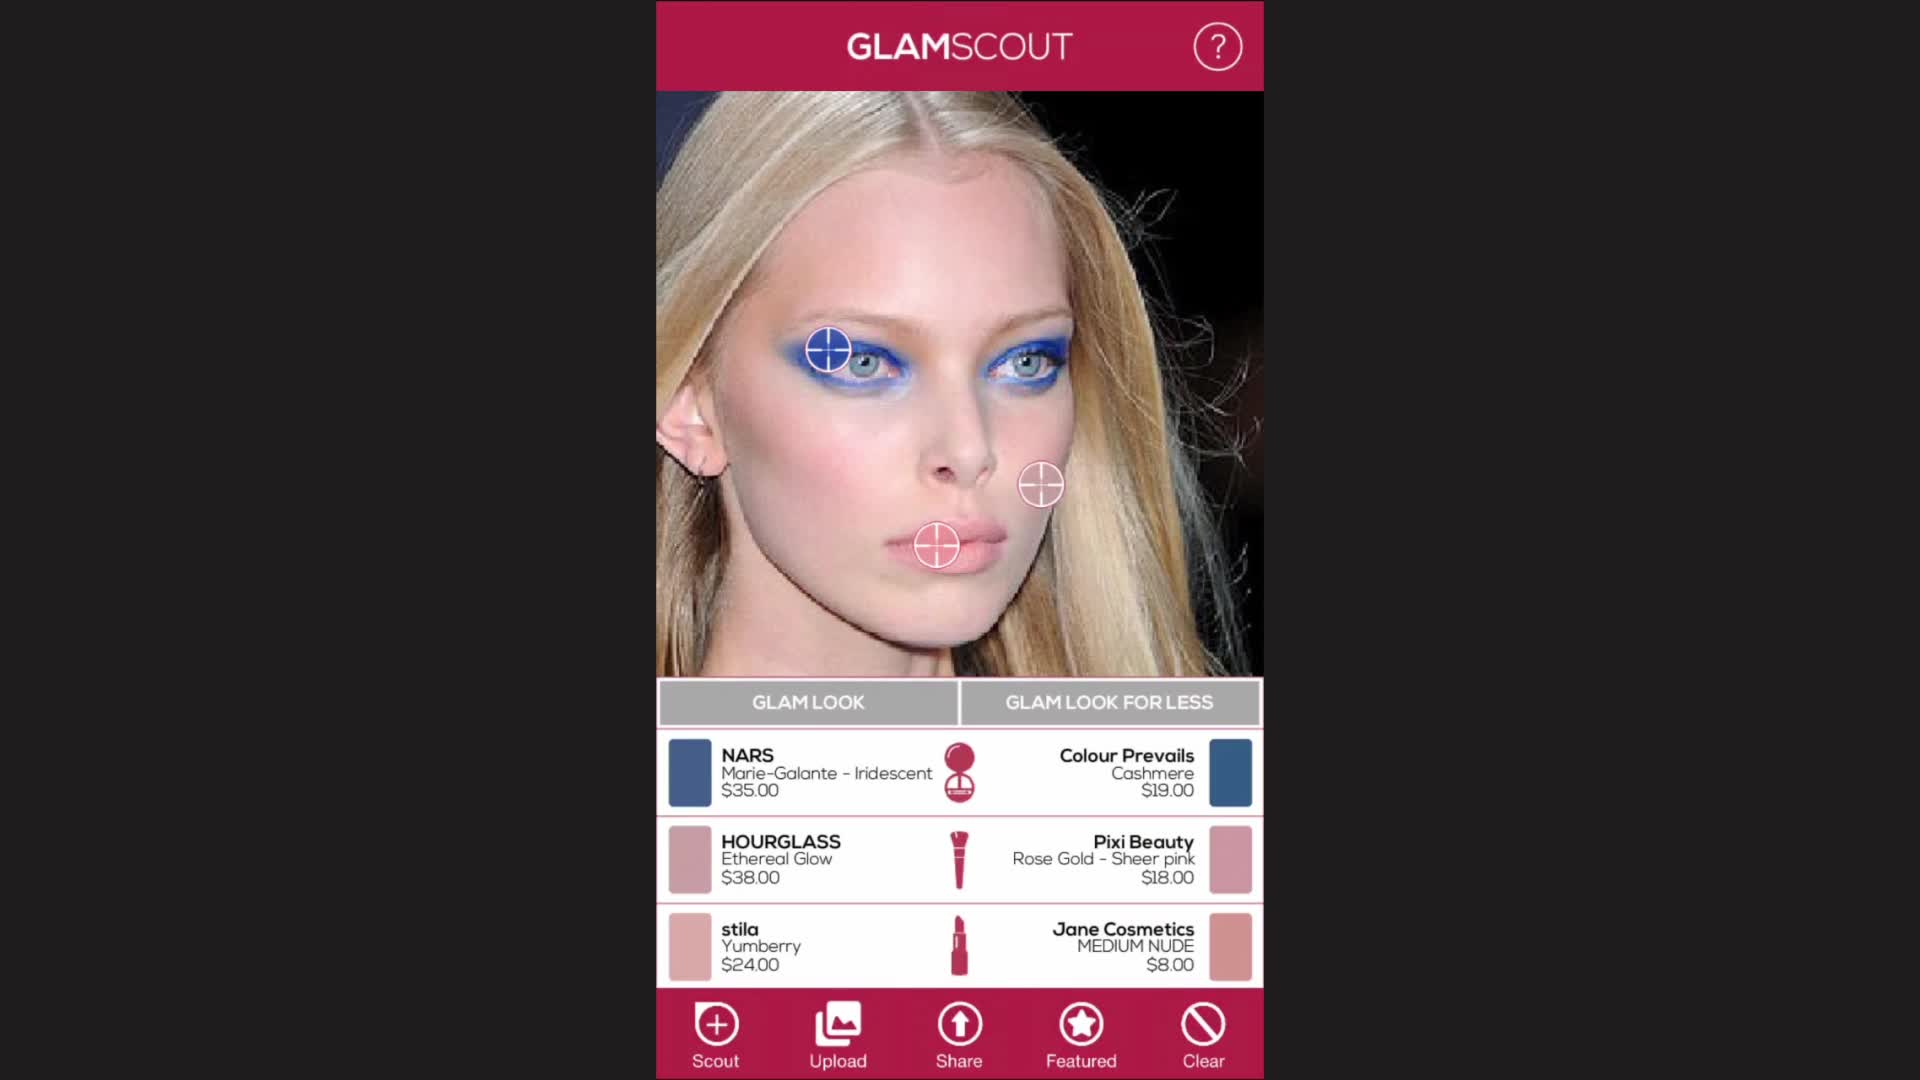 GlamScout, FaceCake's Augmented Reality Makeup App for Scouting Full Cosmetic Looks